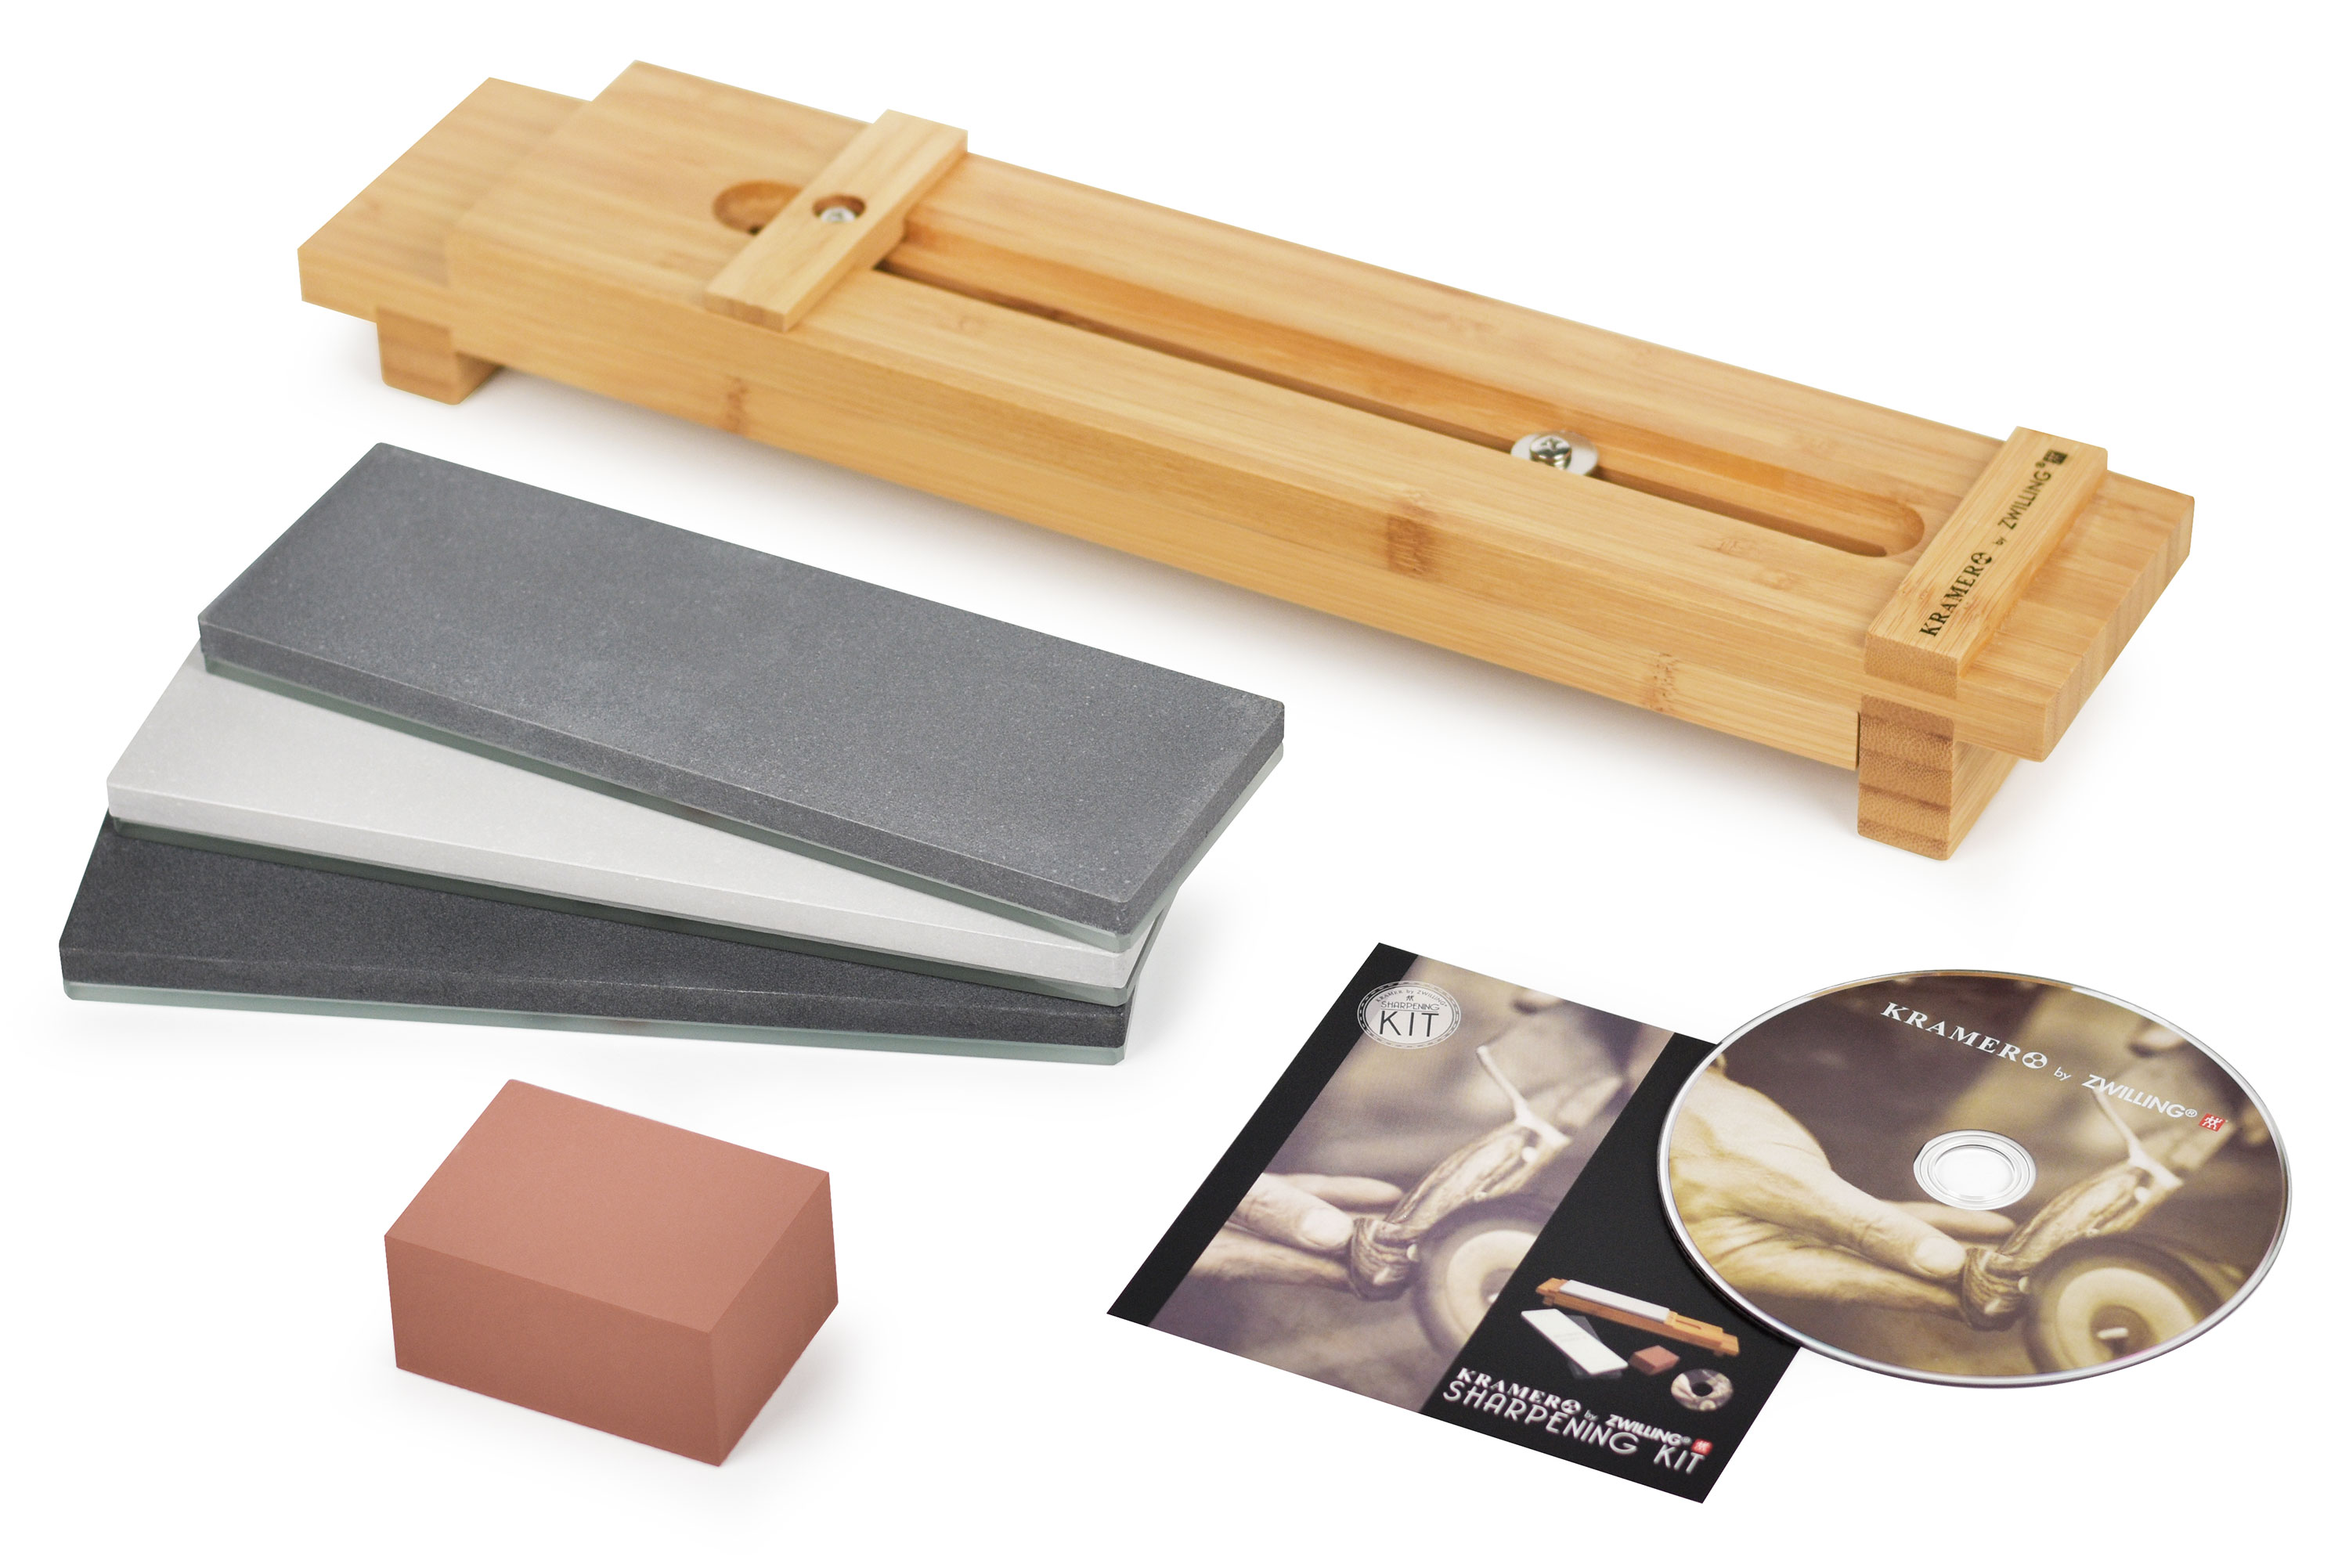 Bob Kramer Sharpening Stones Kit By Zwilling Cutlery And